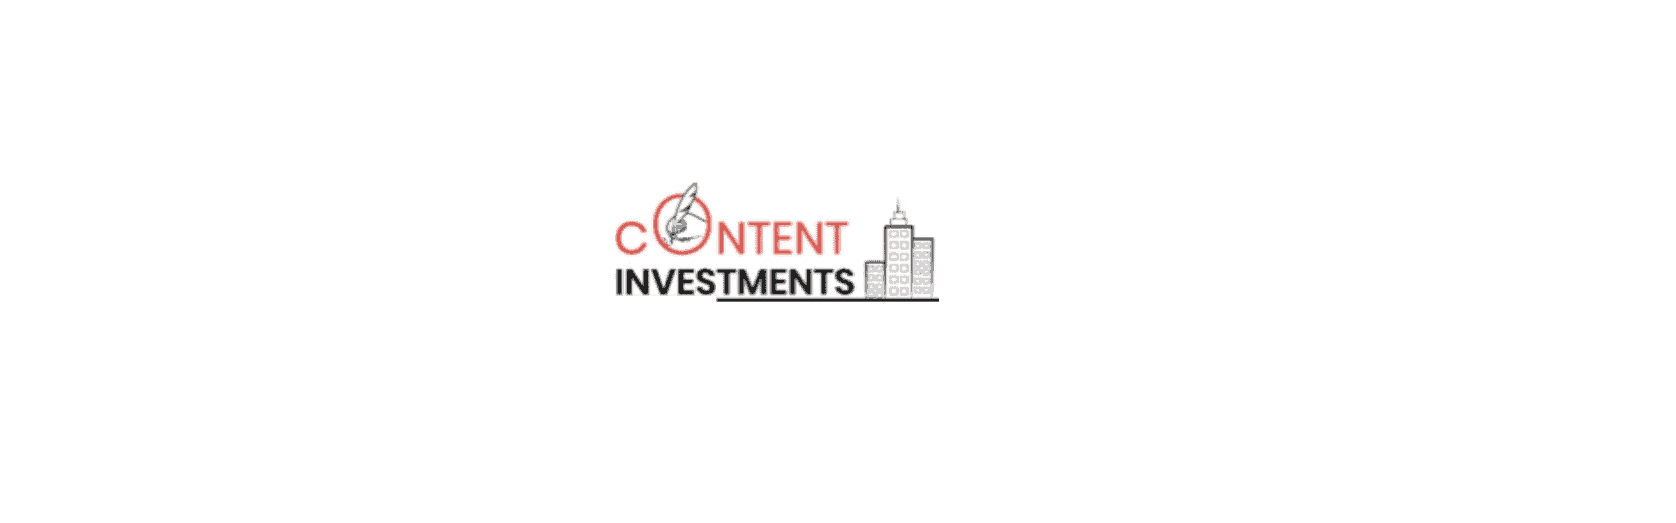 Content Investments: Quality Content, High Investment